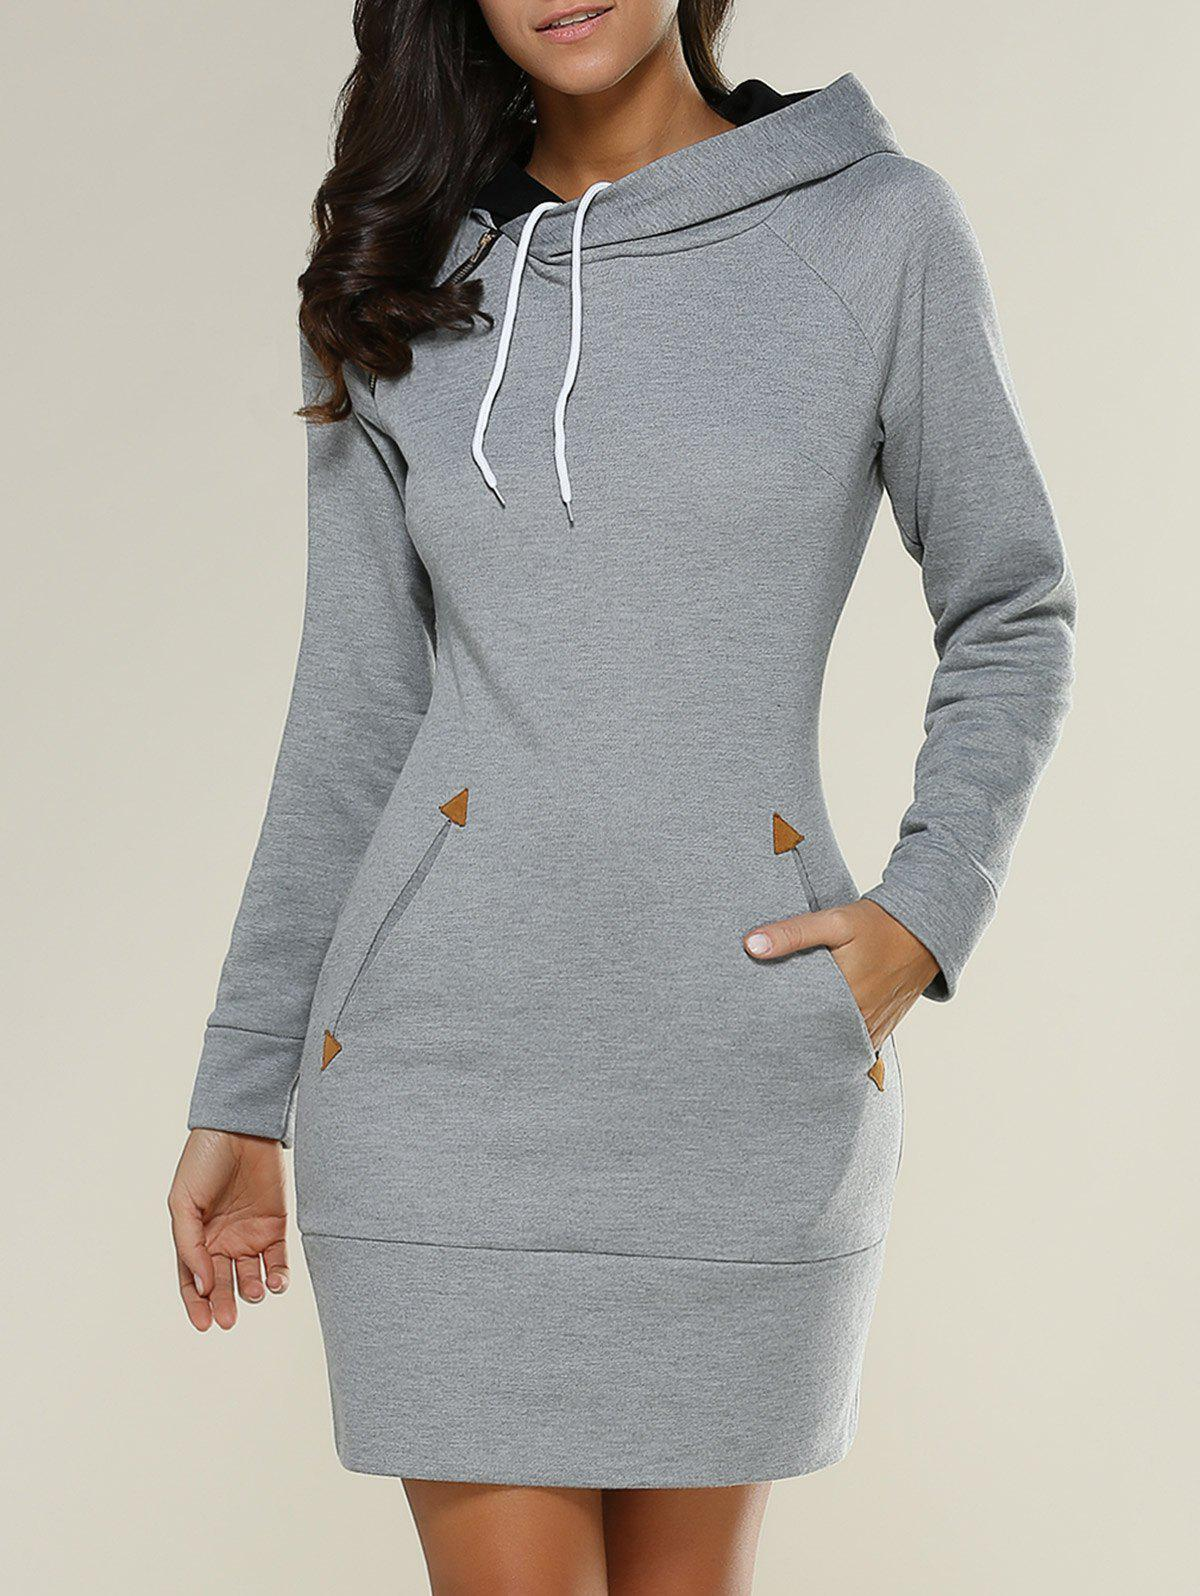 Tight Short Long Sleeve Long Hoodie Mini DressWOMEN<br><br>Size: M; Color: GRAY; Style: Casual; Material: Polyester; Silhouette: Sheath; Dresses Length: Mini; Neckline: Hooded; Sleeve Length: Long Sleeves; Embellishment: Pockets; Pattern Type: Solid; With Belt: No; Season: Fall,Spring; Weight: 0.612kg; Package Contents: 1 x Hoodie Dress;